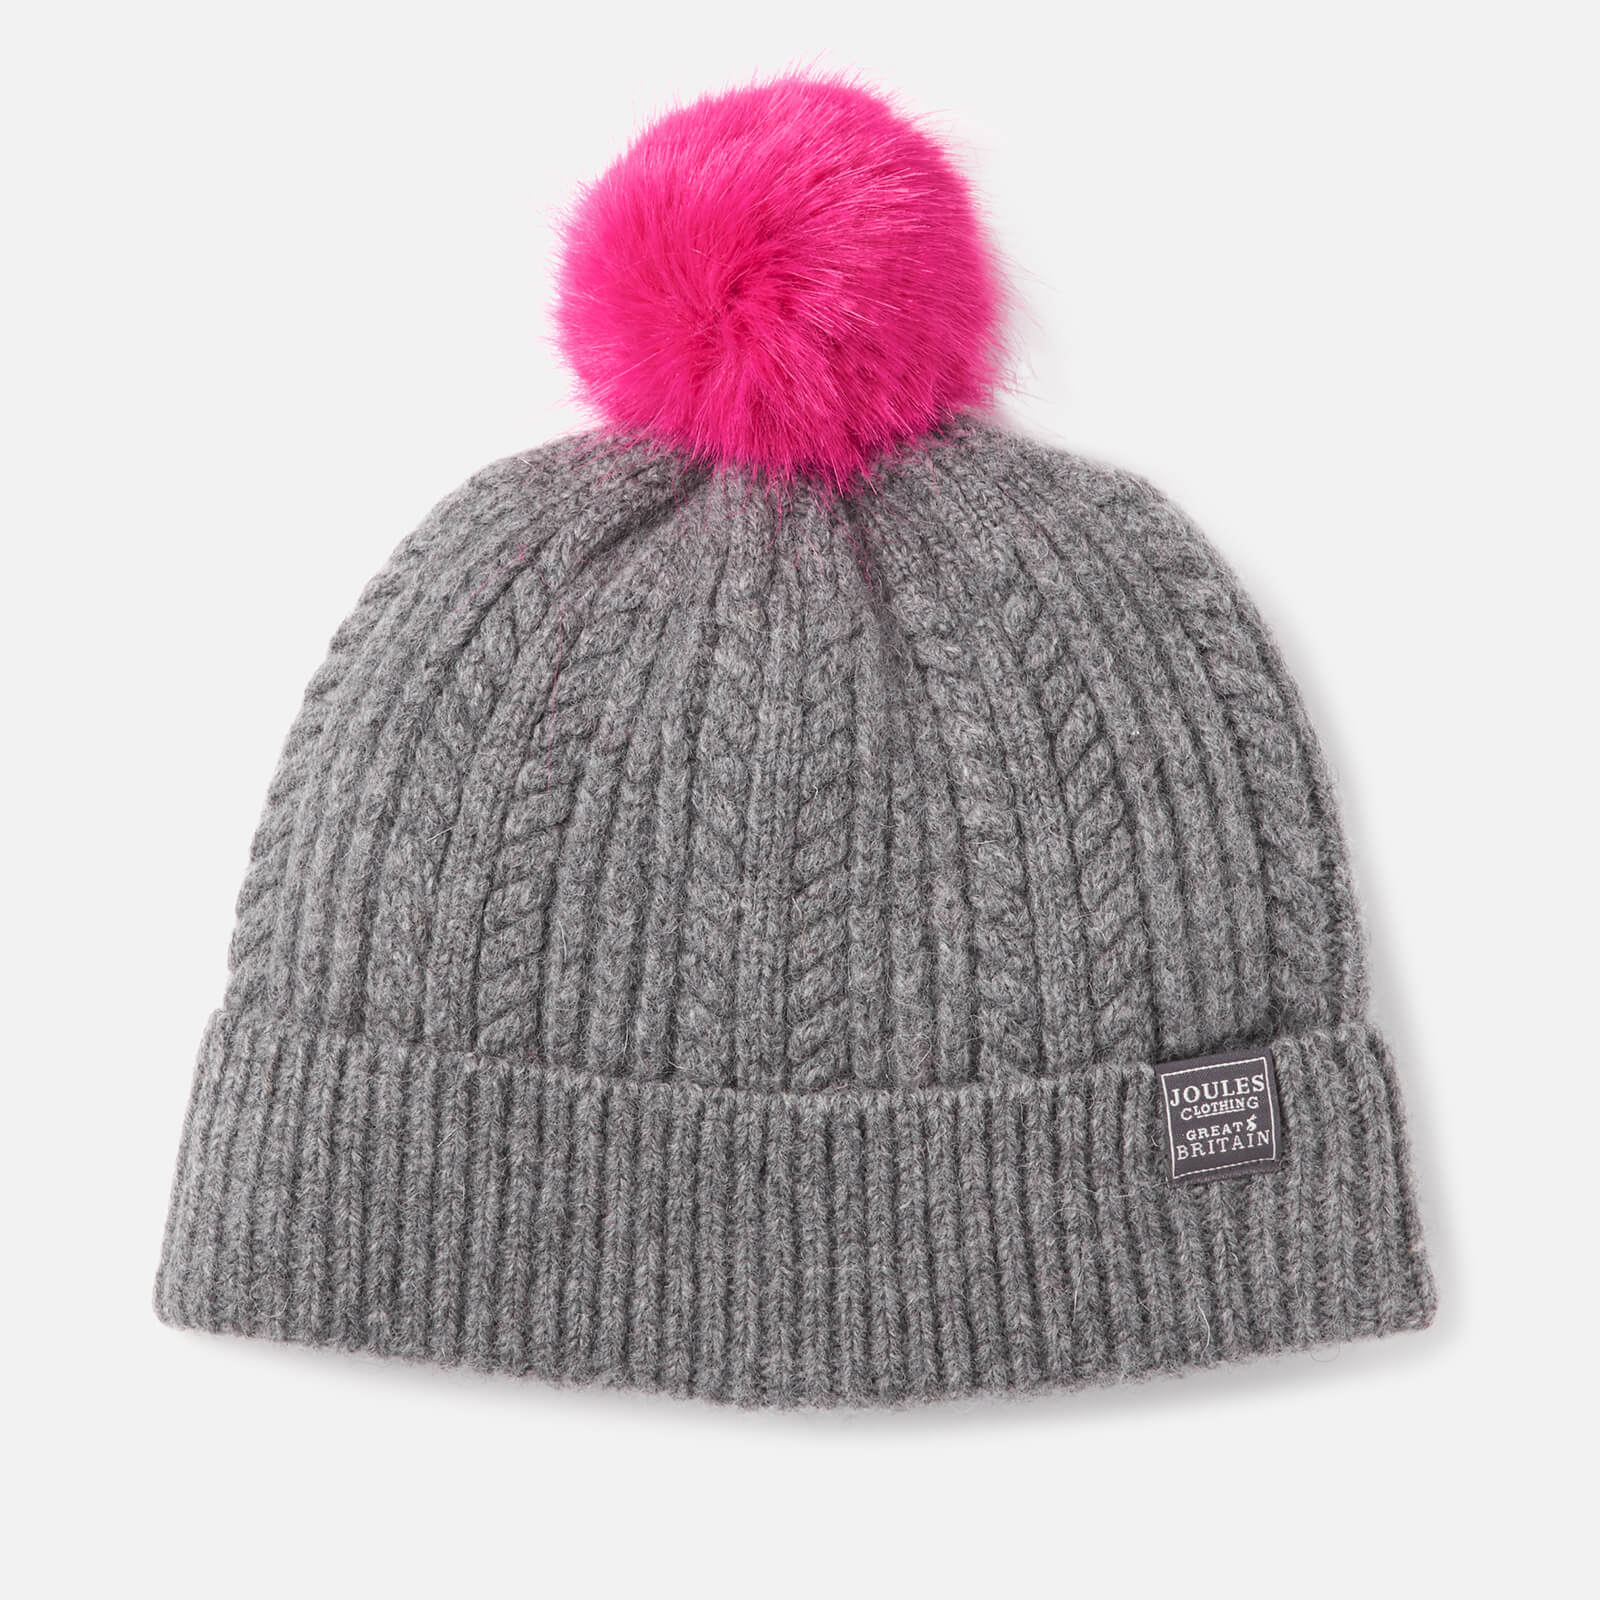 f1c27e7bfc5 Joules Women s Bobble Hat Fine Cable with Faux Fur Pom - Dark Grey Womens  Accessories